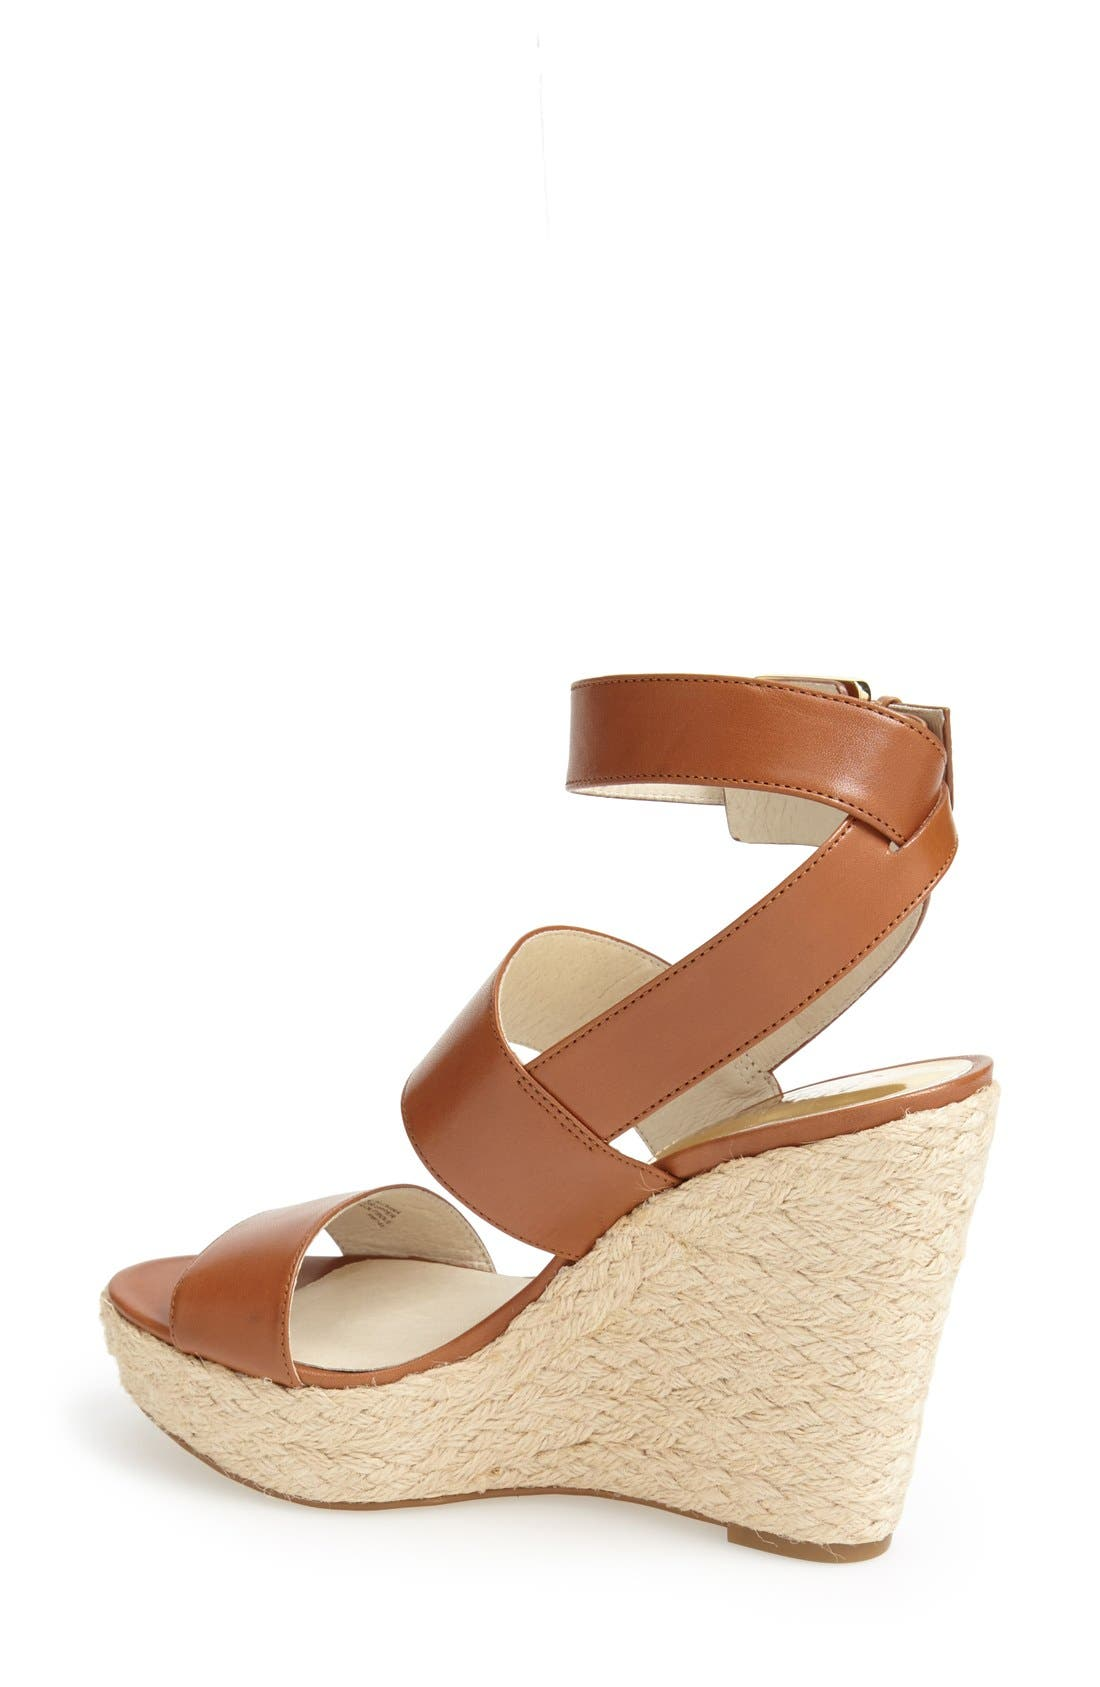 Alternate Image 2  - MICHAEL Michael Kors 'Posey' Ankle Strap Espadrille Wedge Sandal (Women)